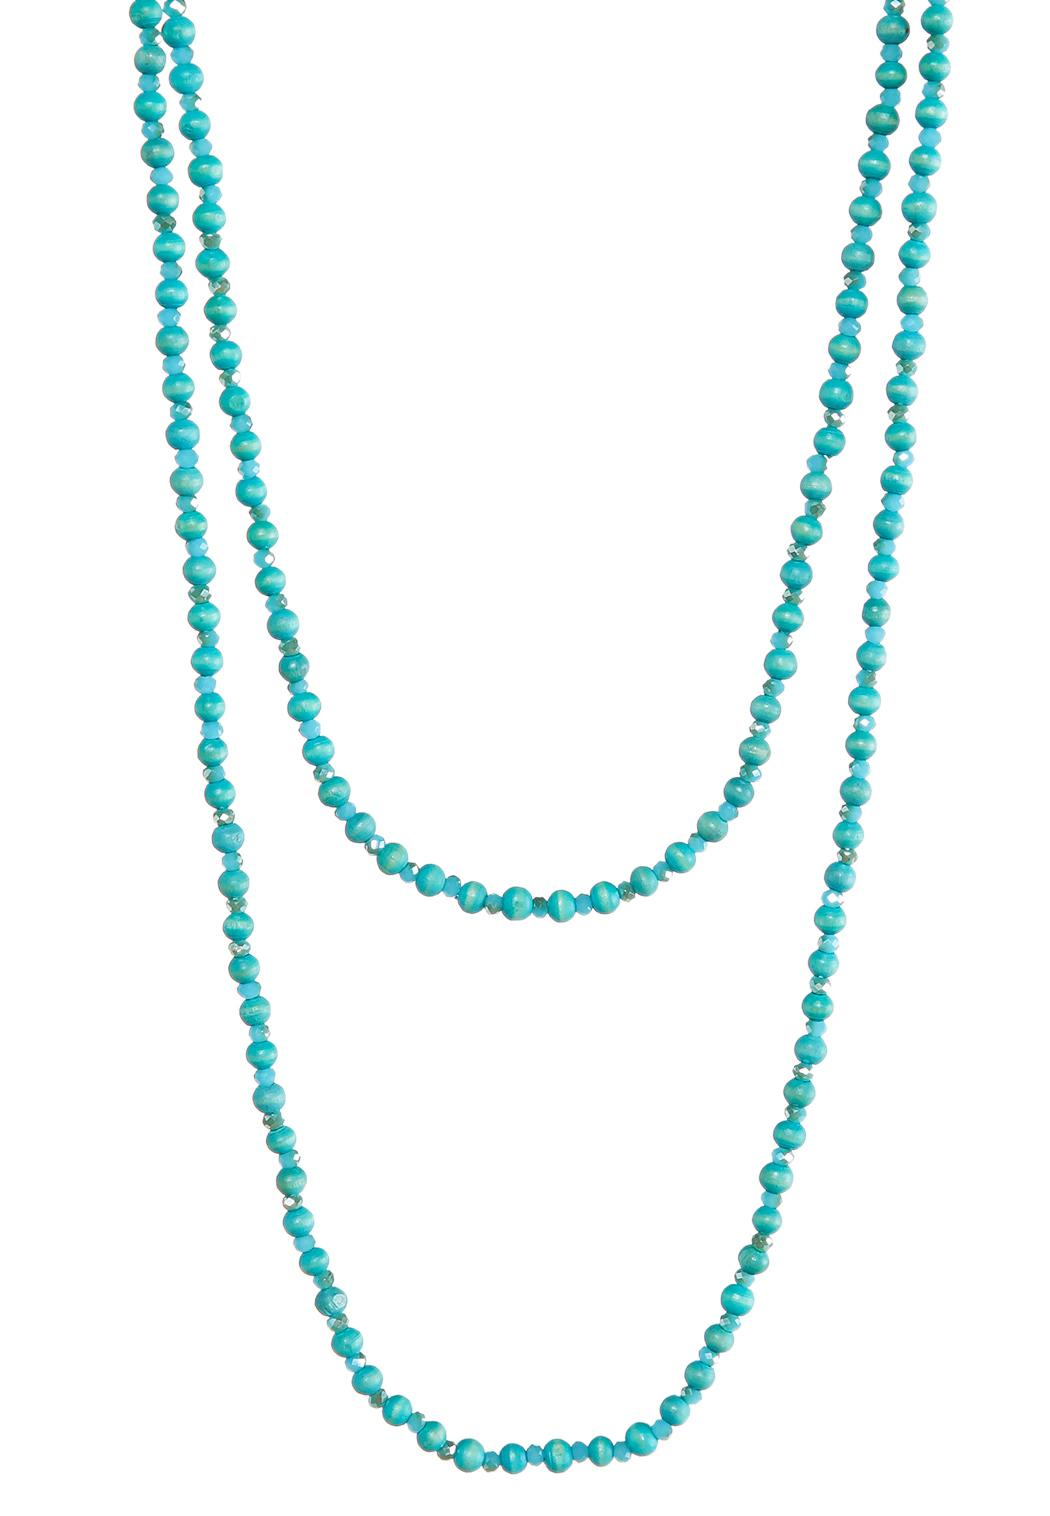 Blue Bead Necklace Set Necklaces Cato Fashions - How to create a commercial invoice online bead stores